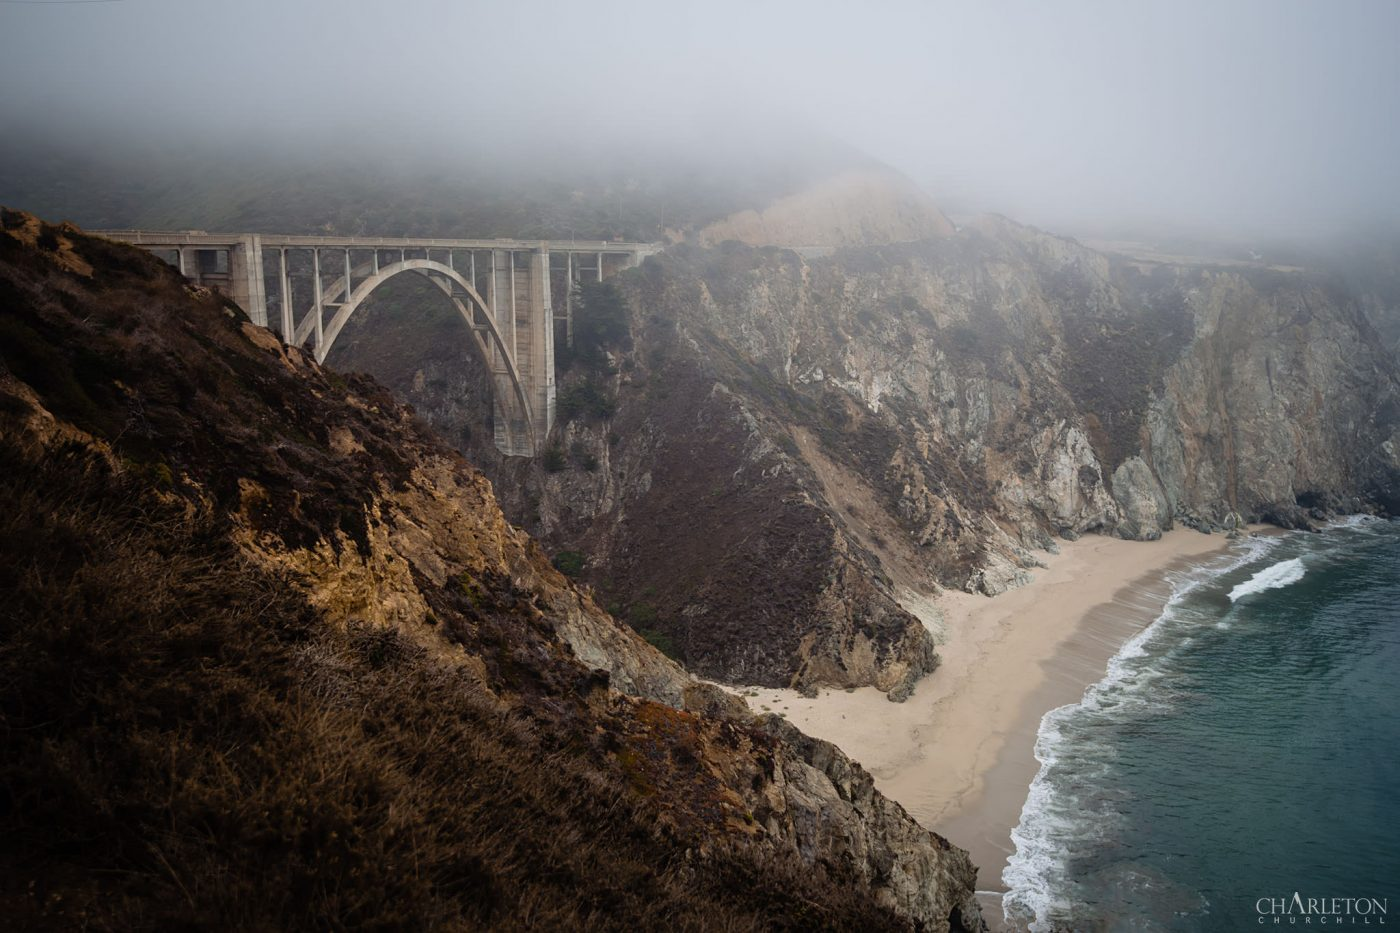 Bixby Bridge in big sur California